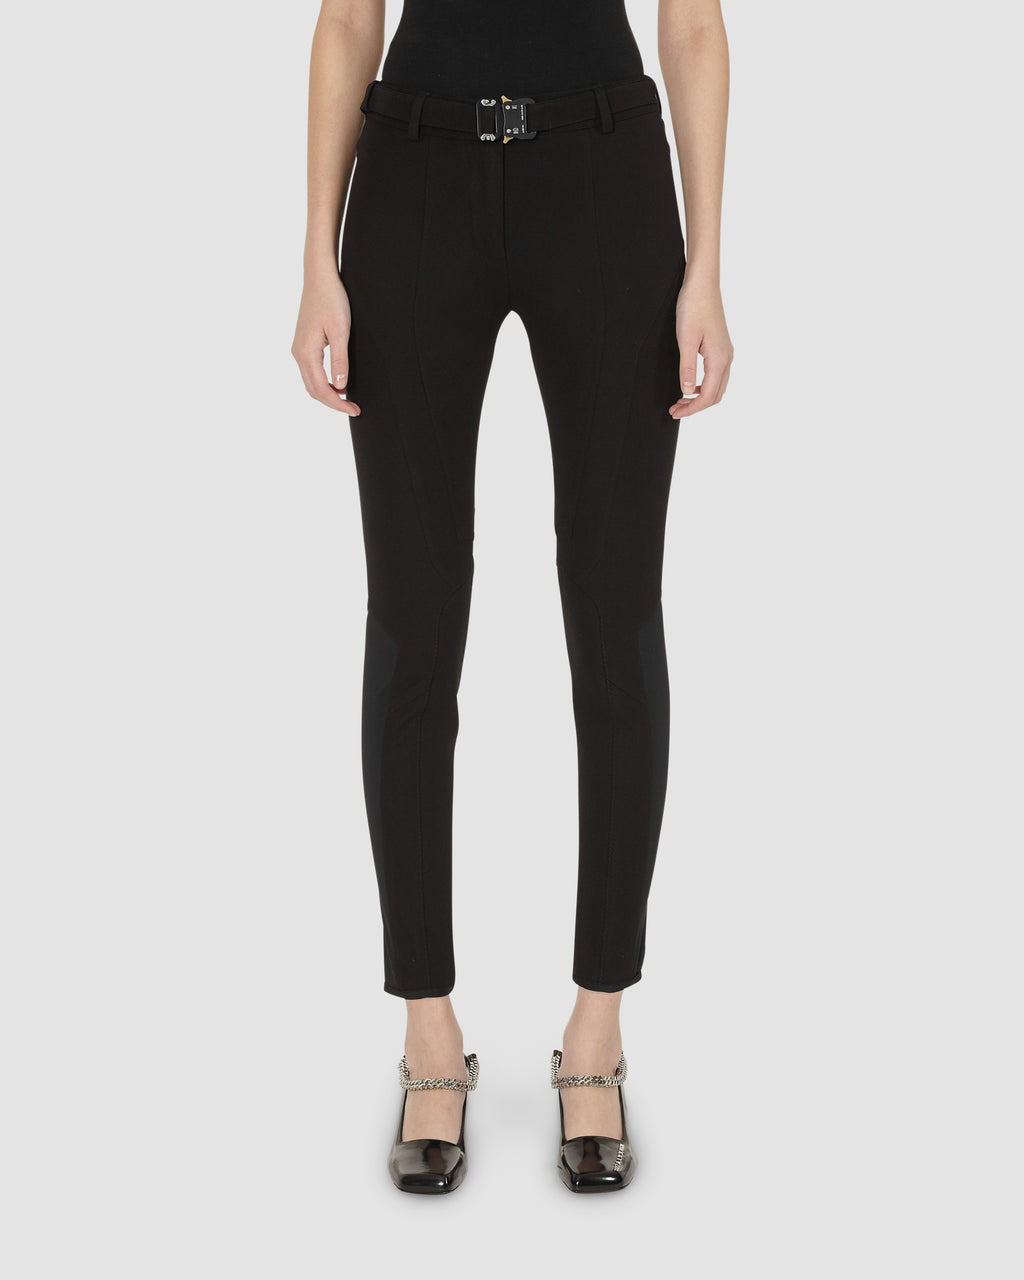 1017 ALYX 9SM | RIDING PANT | Pants | BLACK, Google Shopping, Pants, S20, S20 Drop II, Trousers, Woman, WOMEN